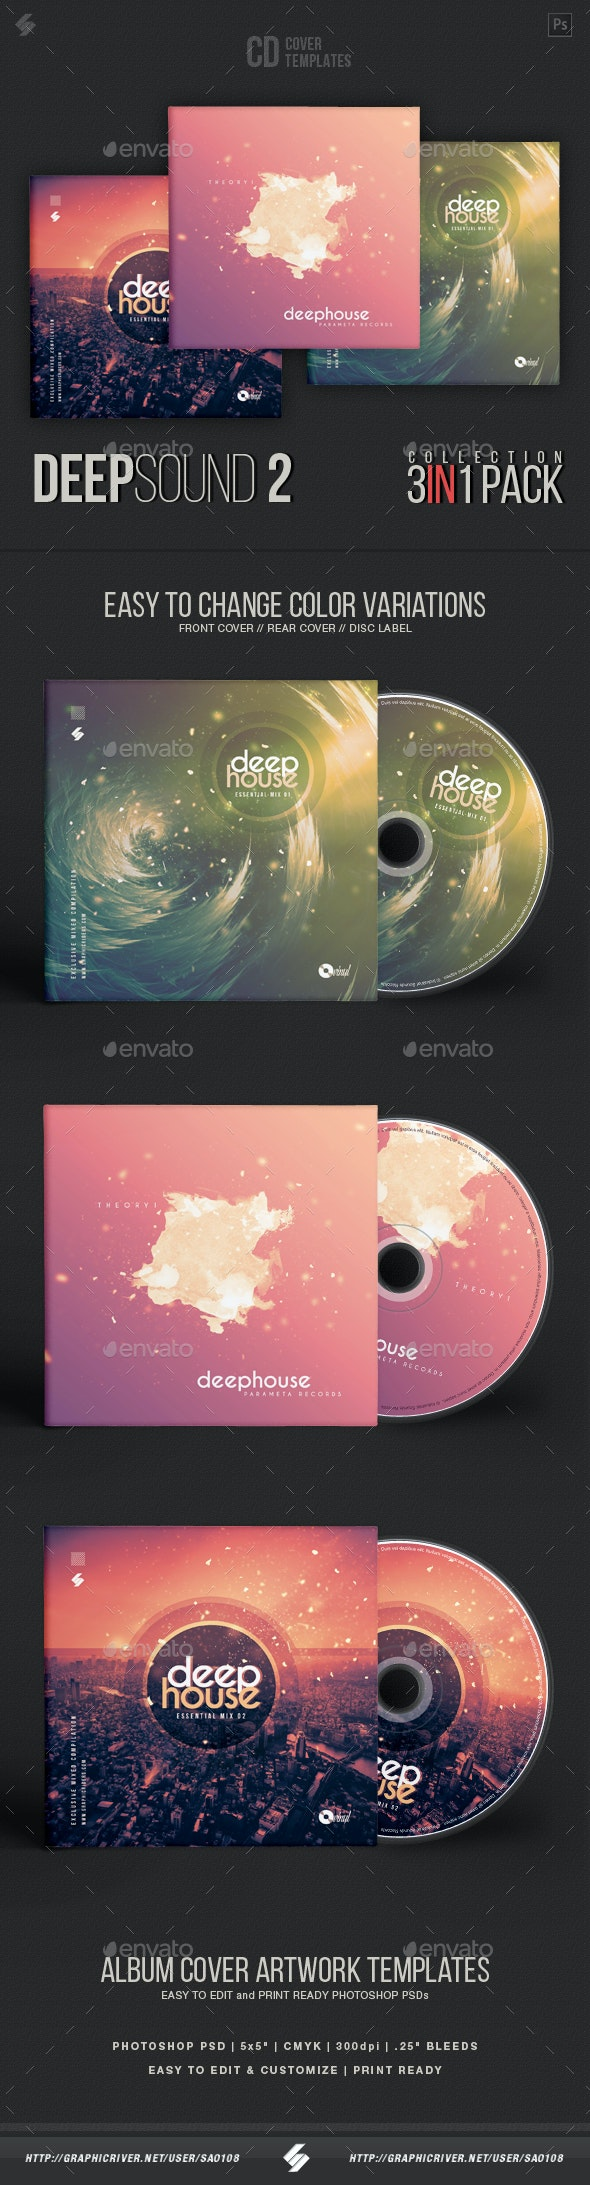 10 Best CD & DVD Artwork Templates  for September 2020